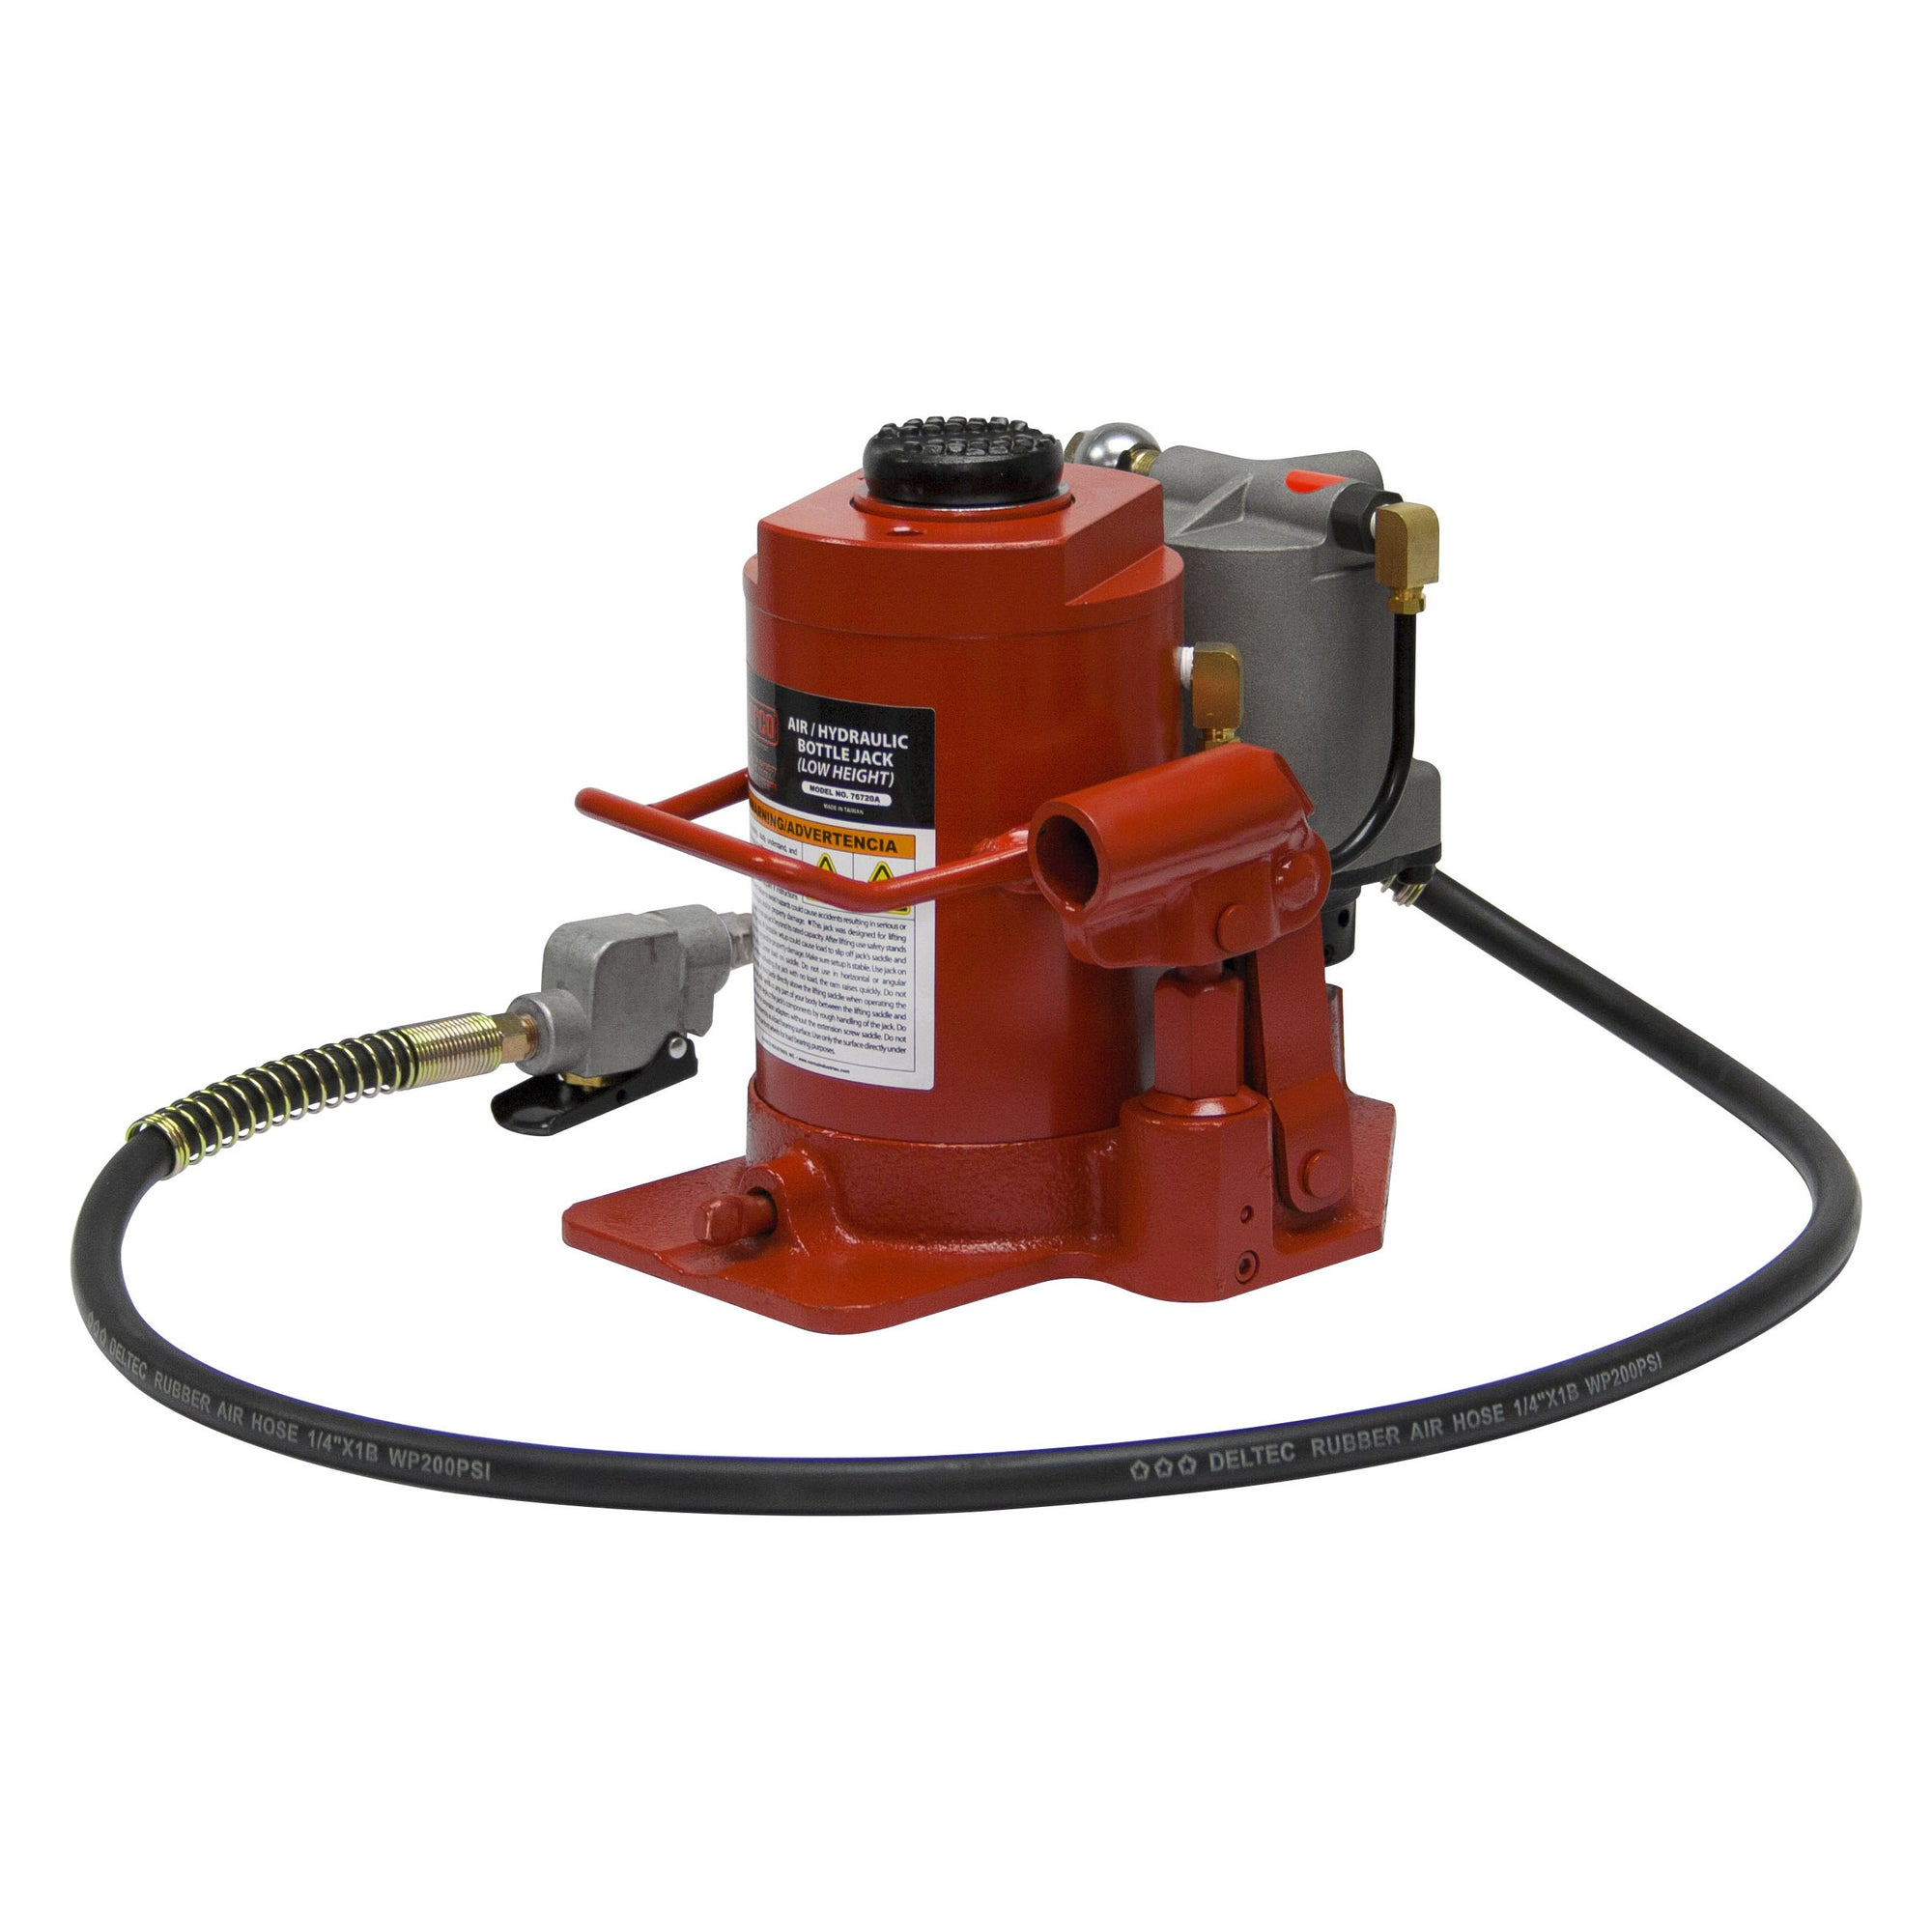 Norco Bottle Jack 20 Ton Low Air/Hydraulic (76720B)